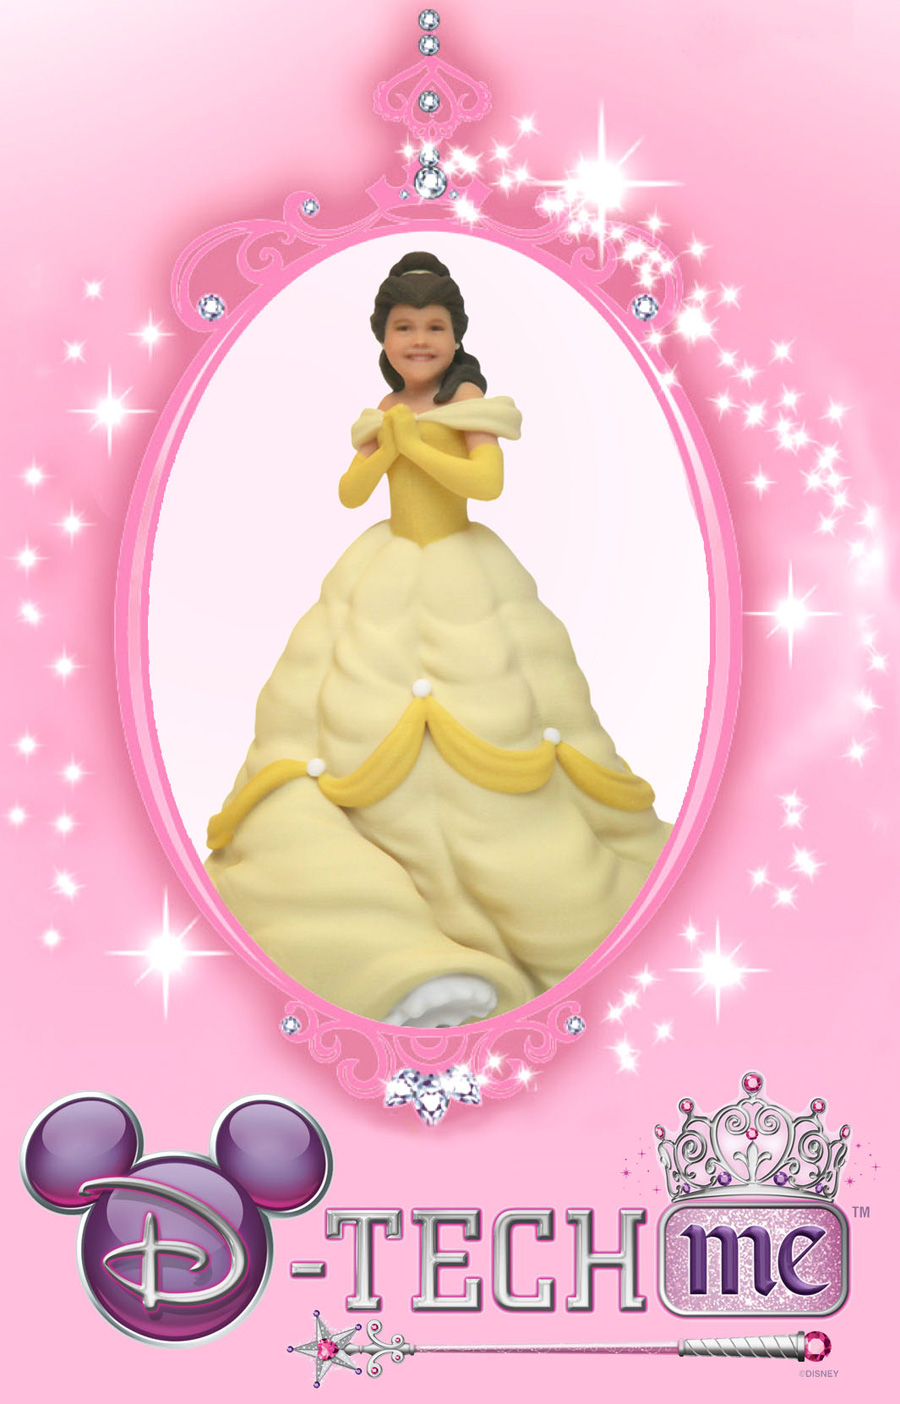 Walt Disney World to create custom Princess figurines with.